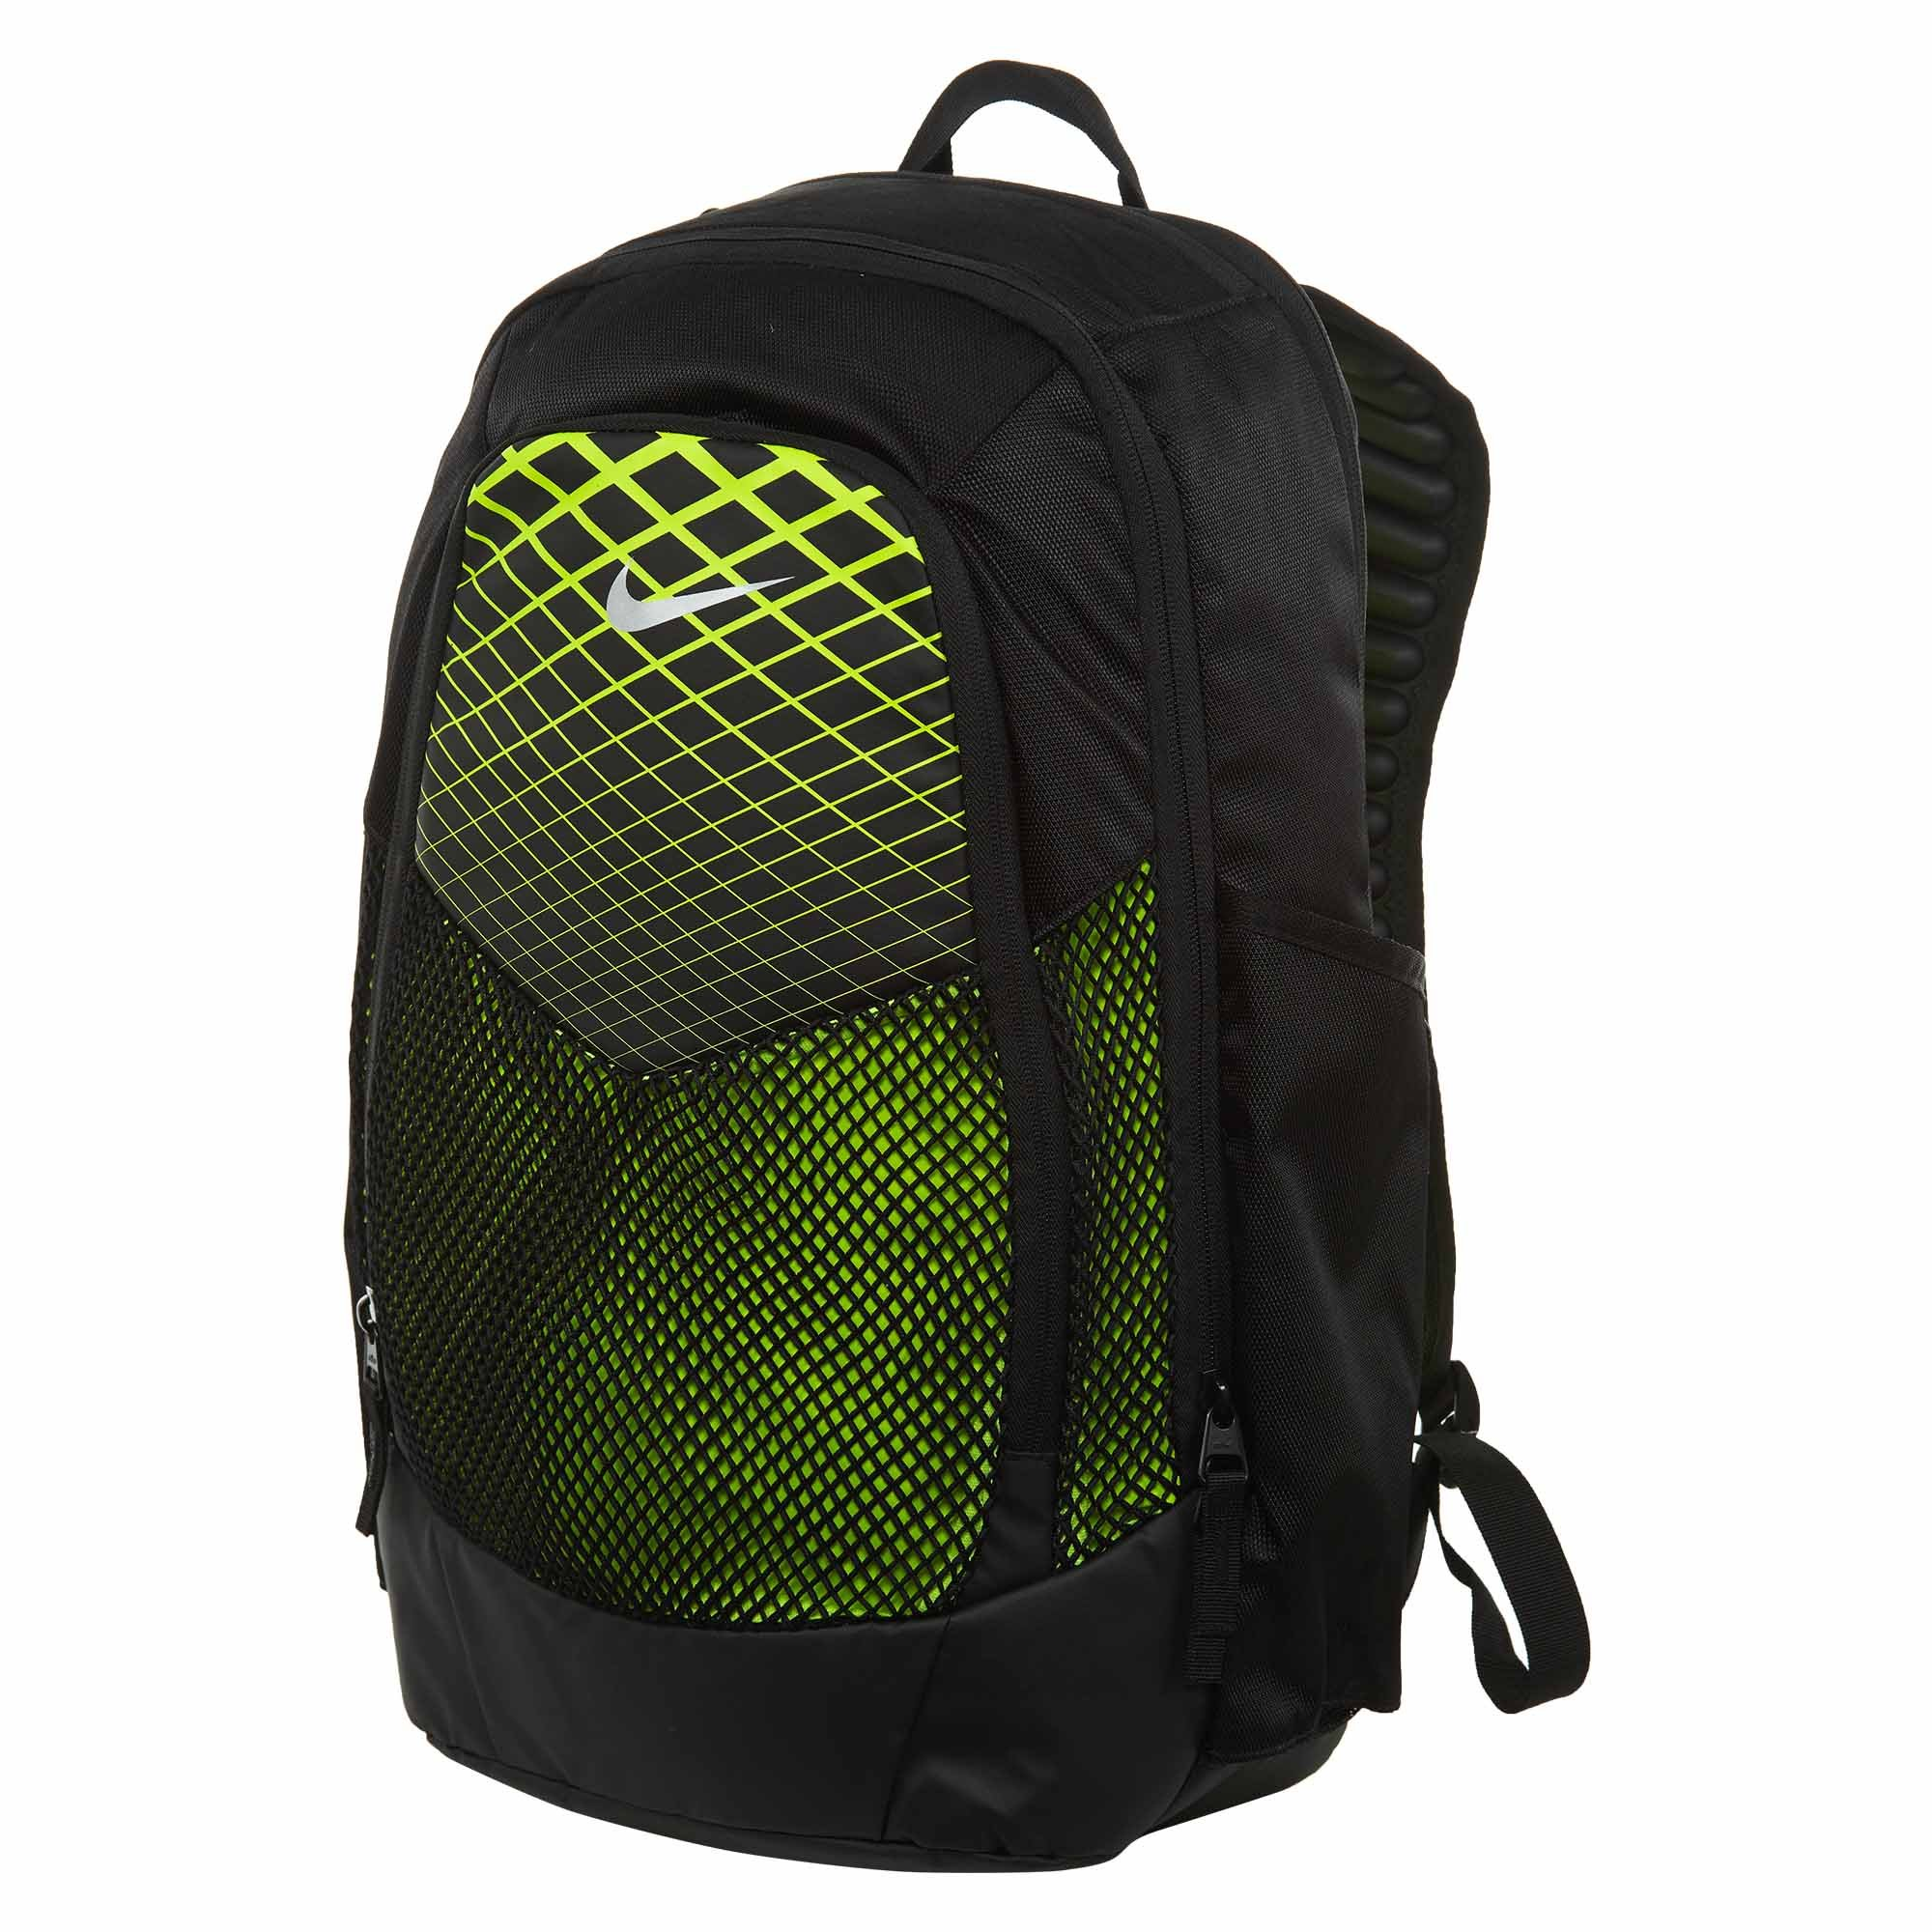 NIKE Vapor Power Training Backpack Black/Volt/Metallic Silver